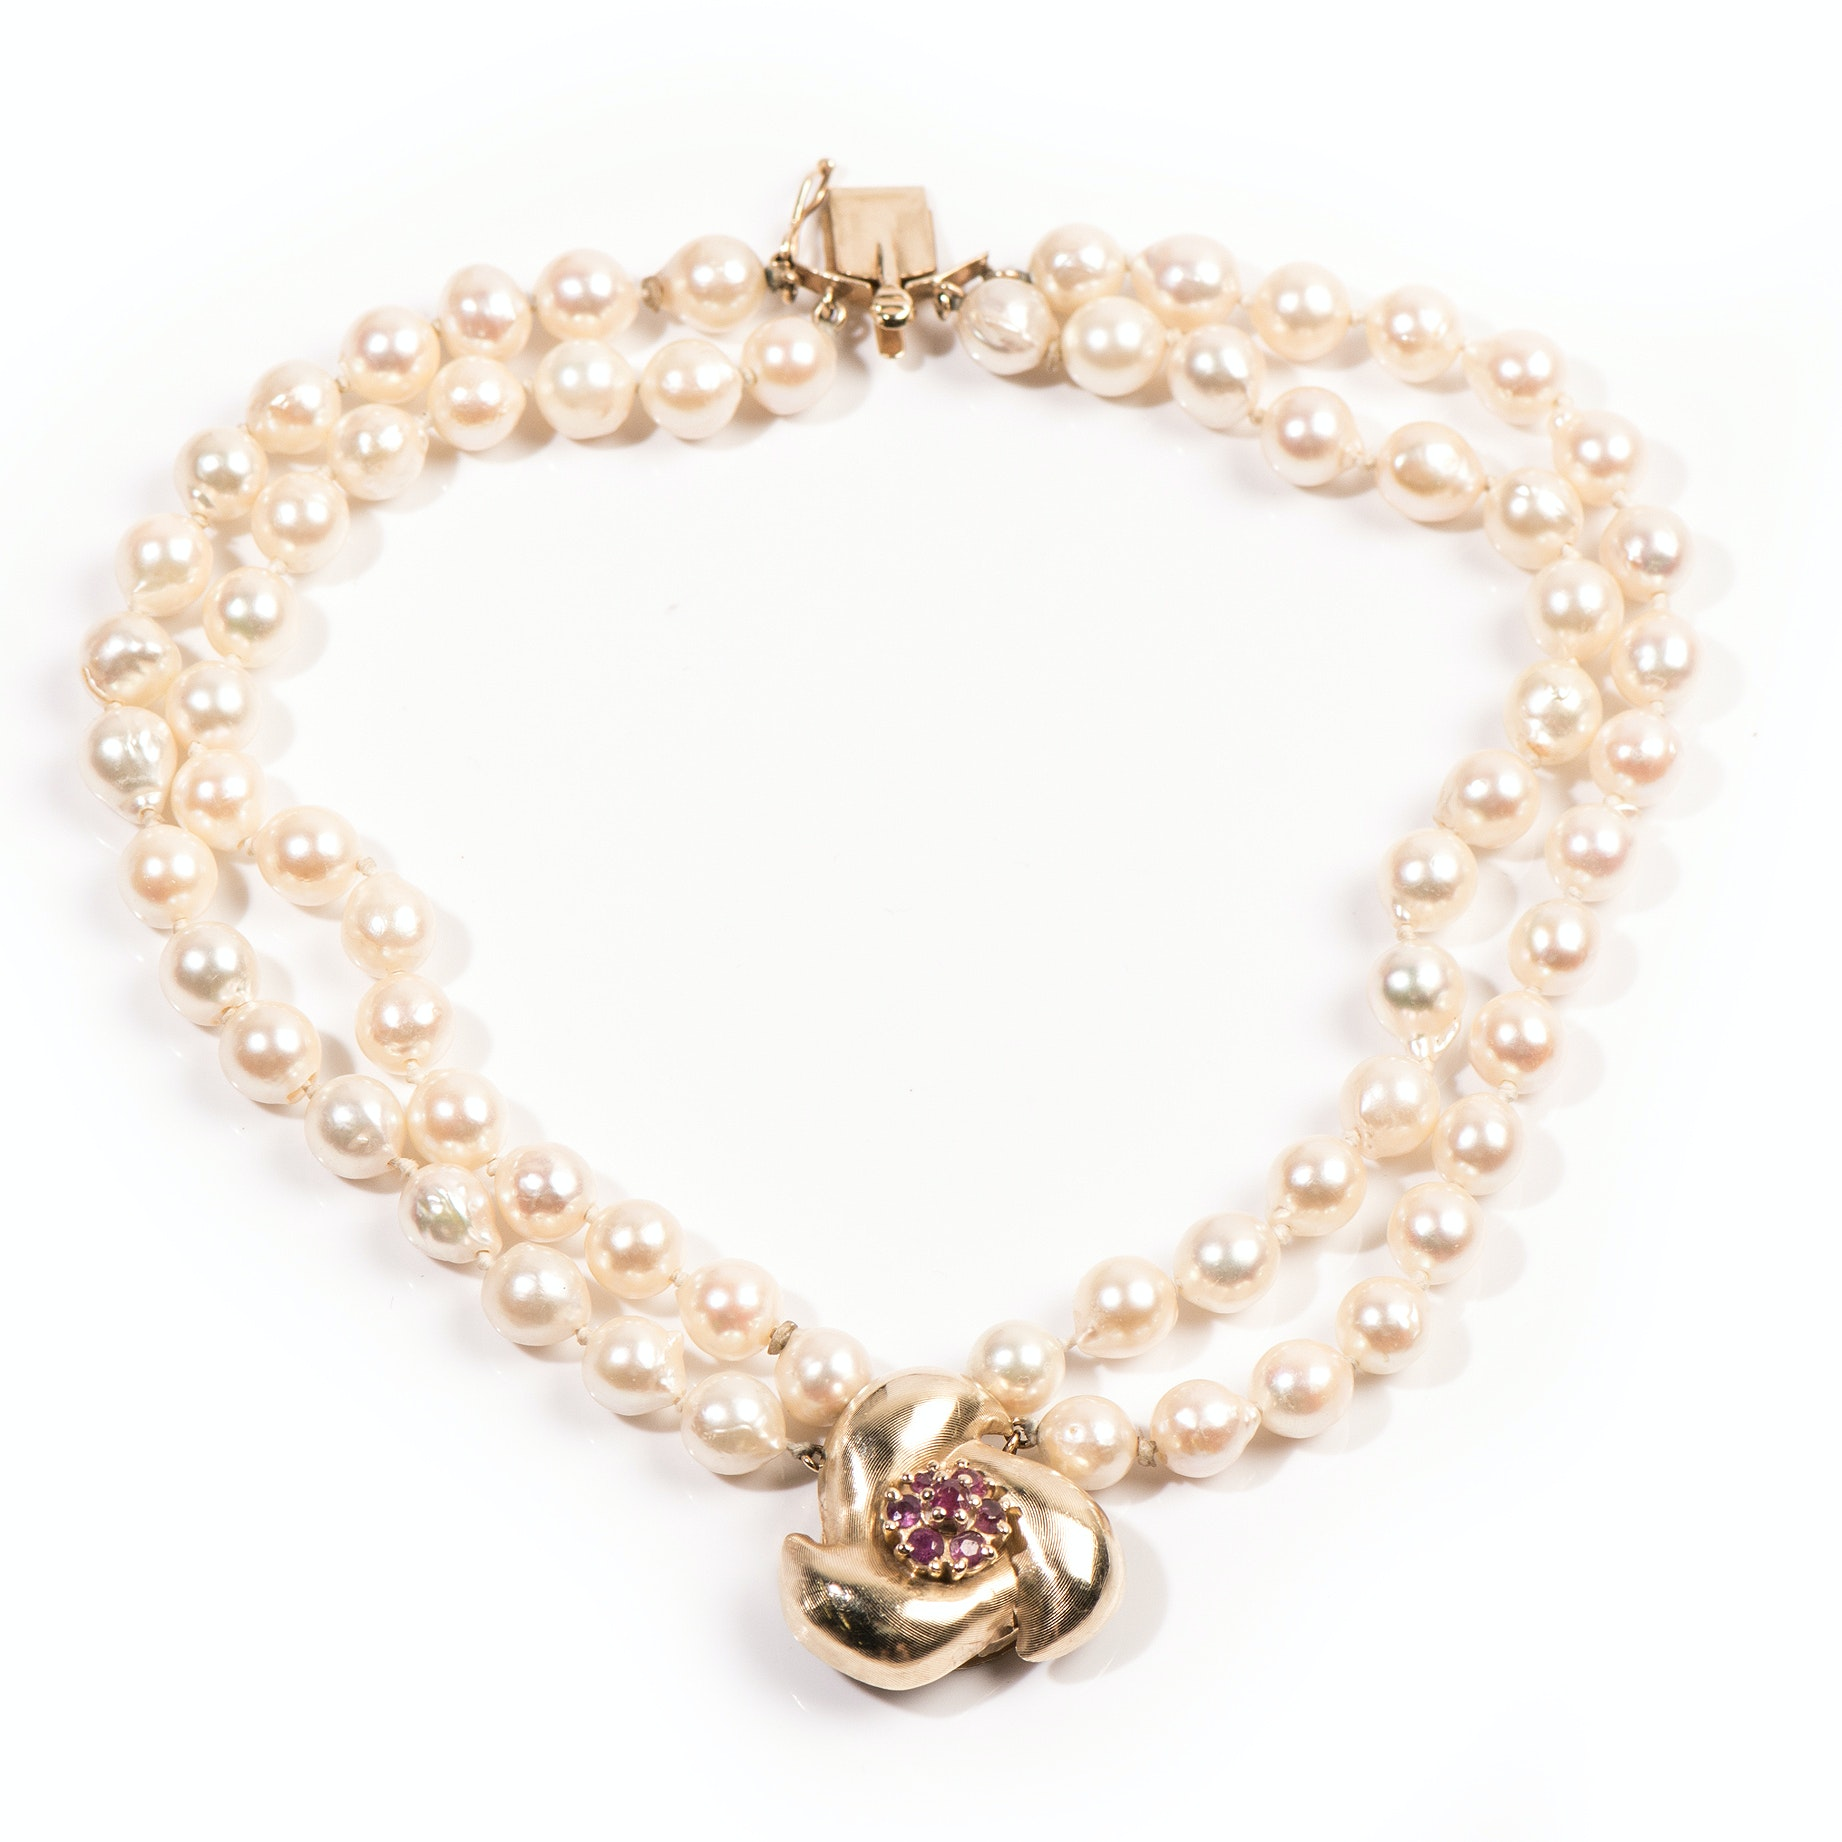 Double Strand Baroque Pearl Bracelet with a 14K Yellow Gold Clasp with Rubies